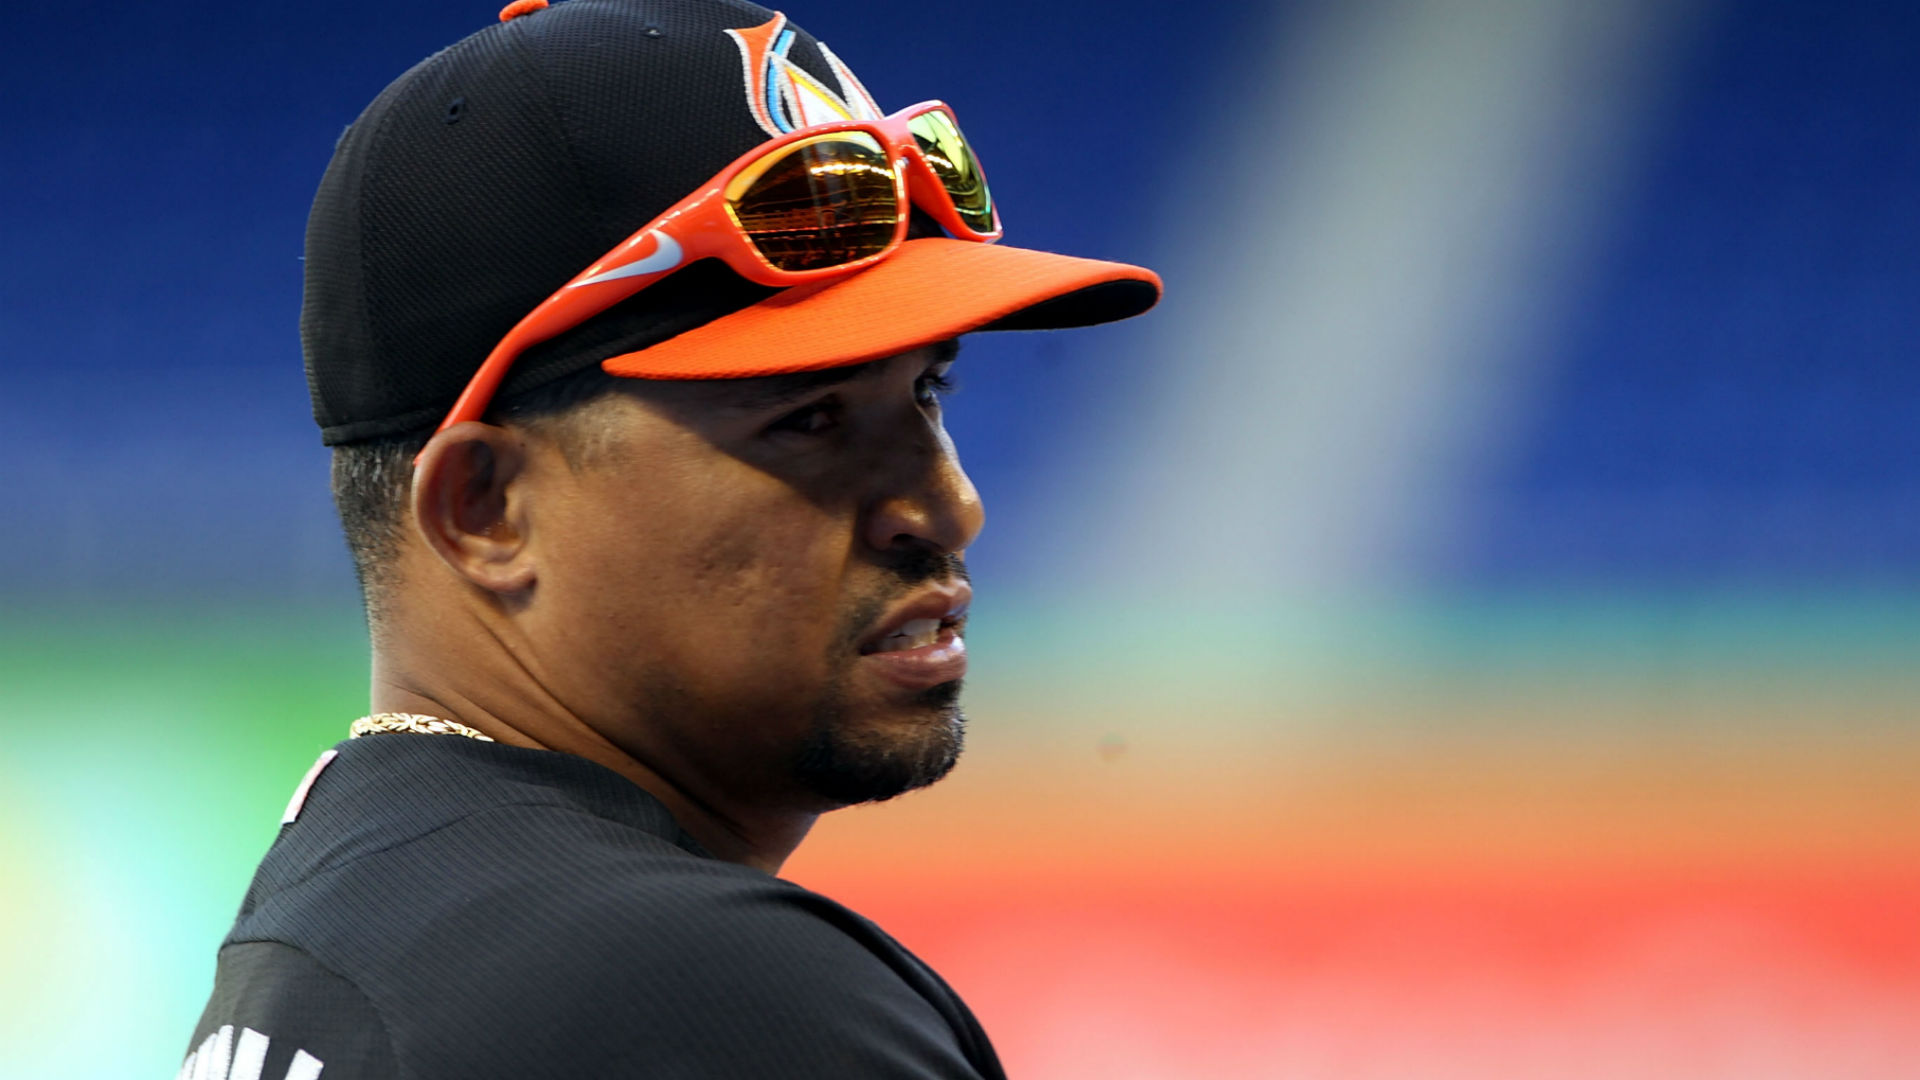 Furcal-Rafael-031615-USNews-Getty-FTR